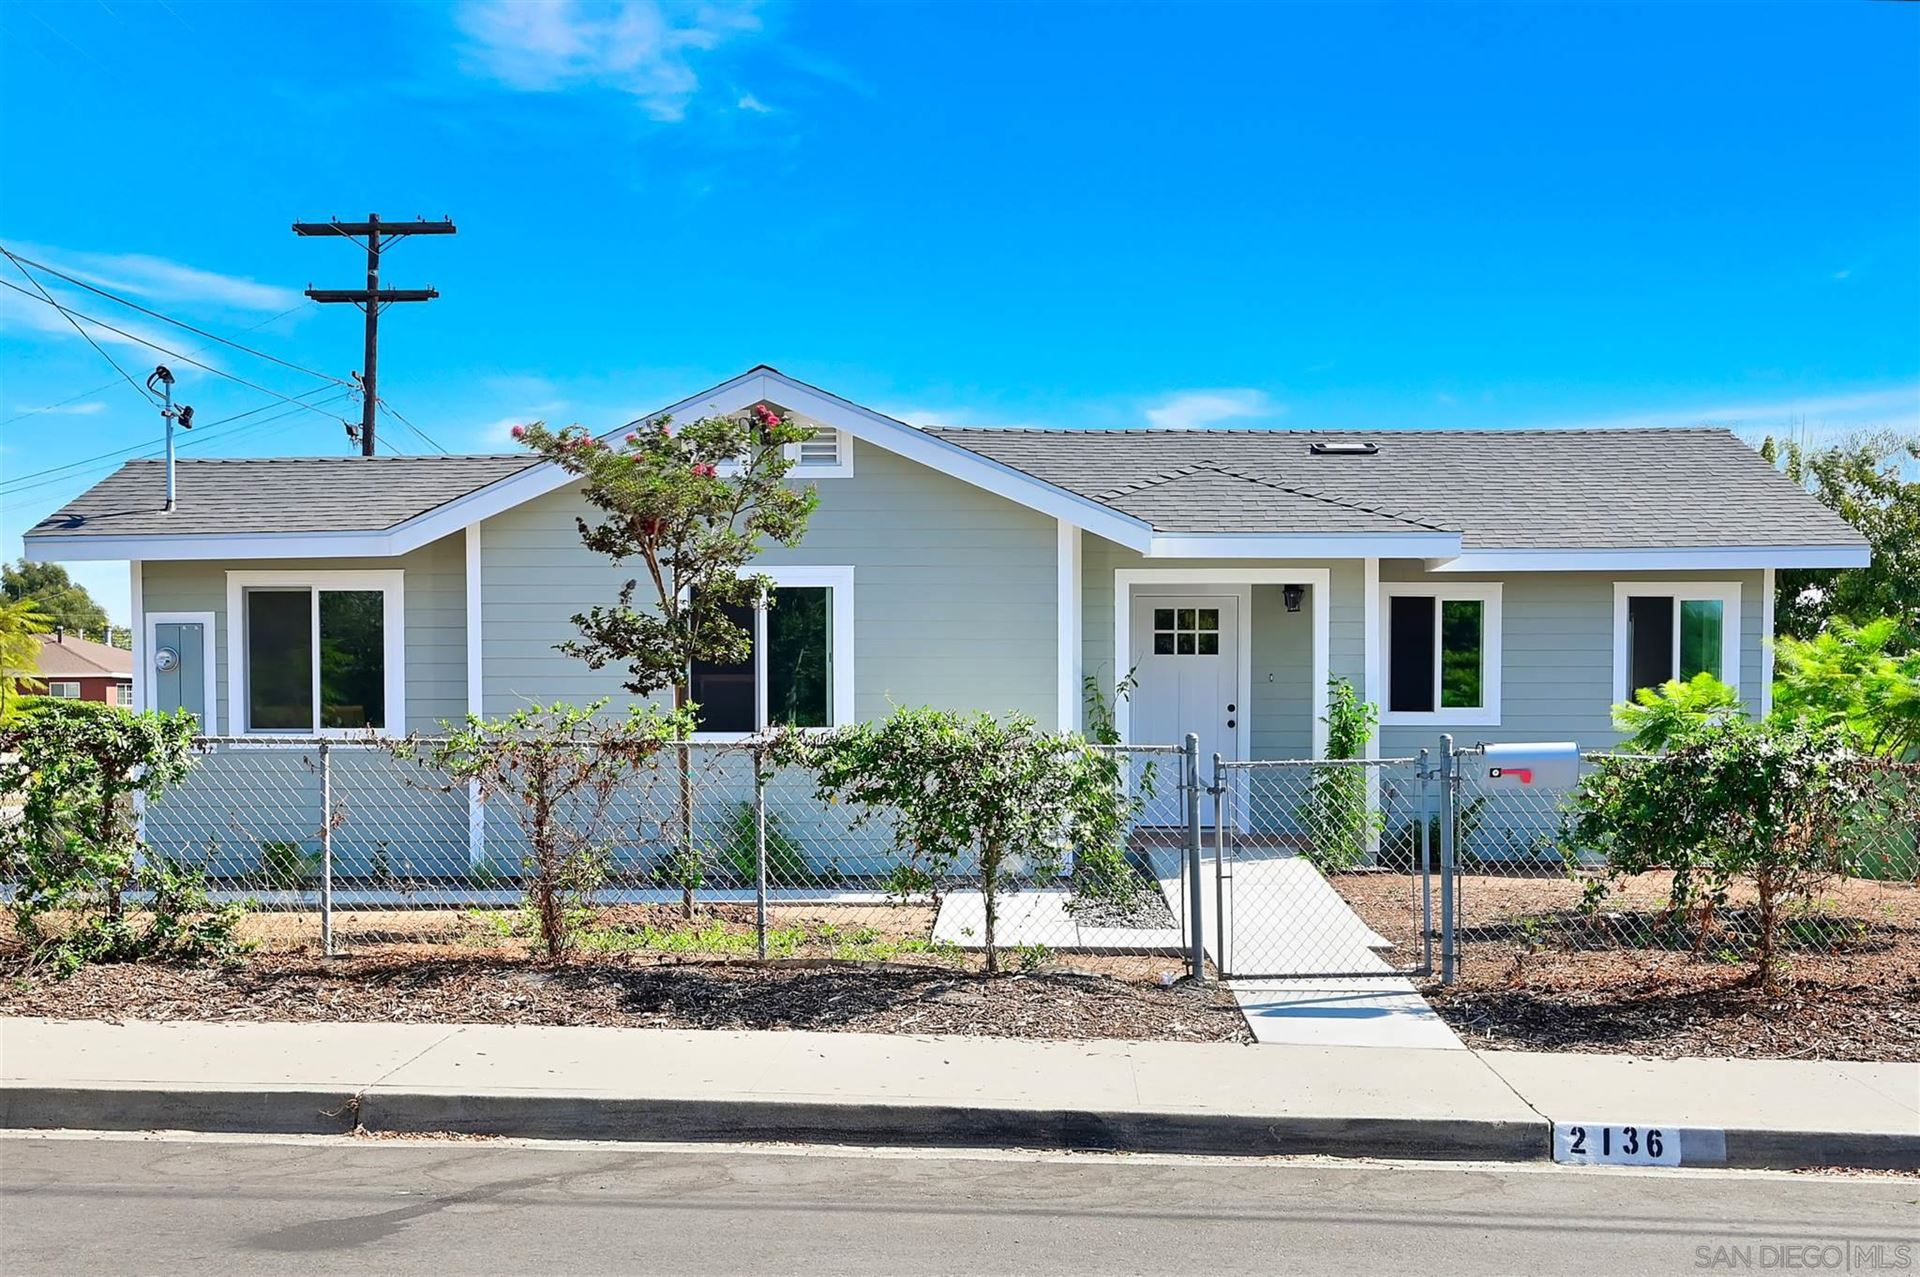 Photo of 2136 22nd, National City, CA 91950 (MLS # 200053275)